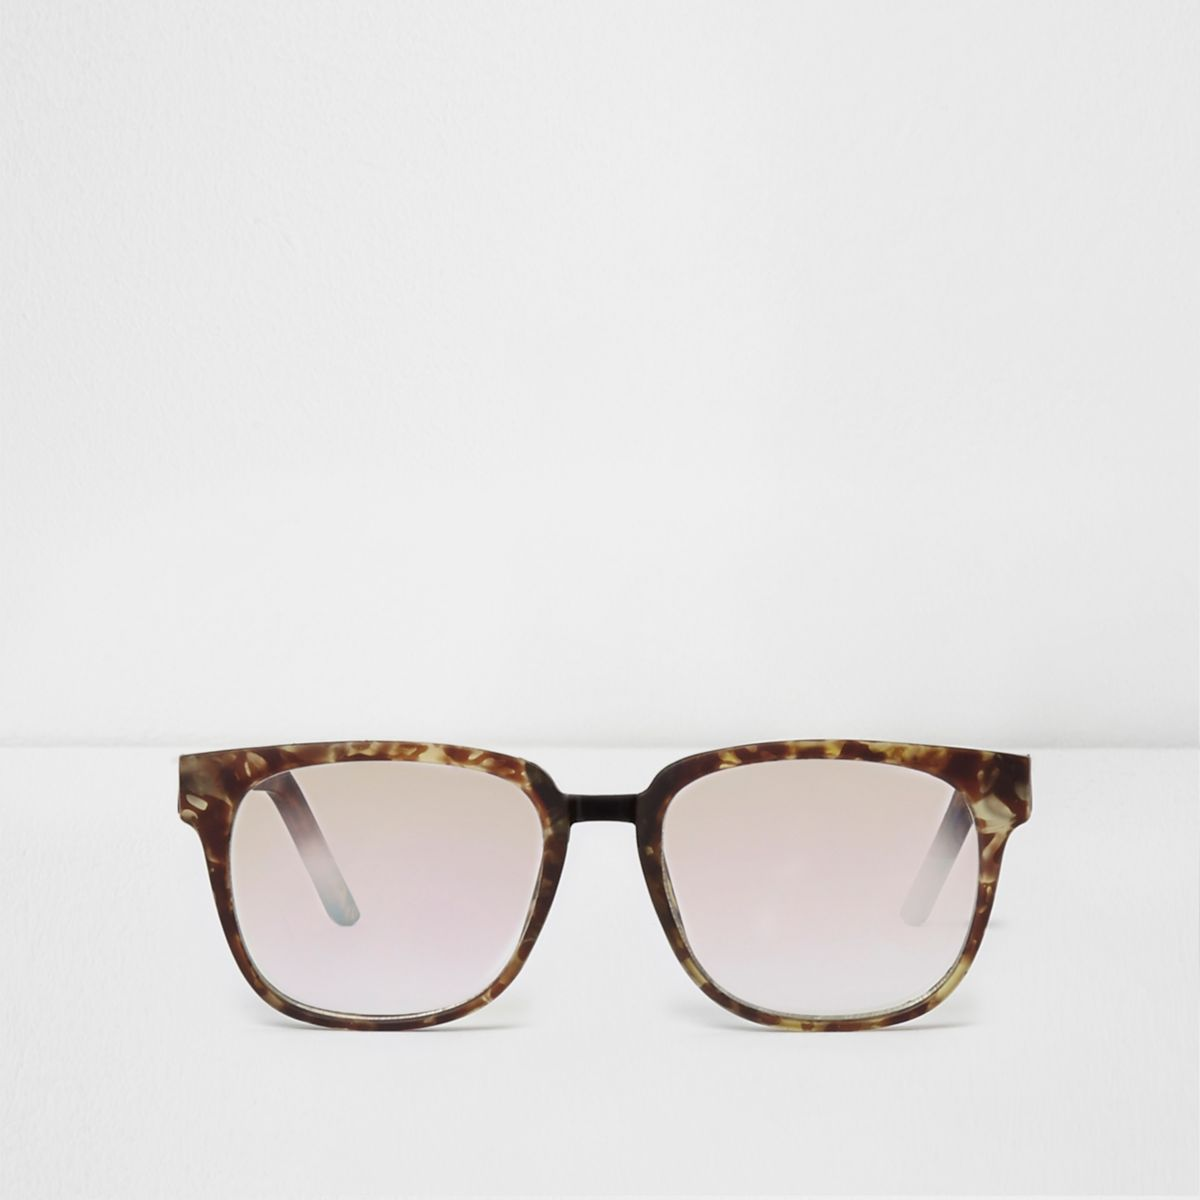 Brown tortoiseshell clear lenses sunglasses